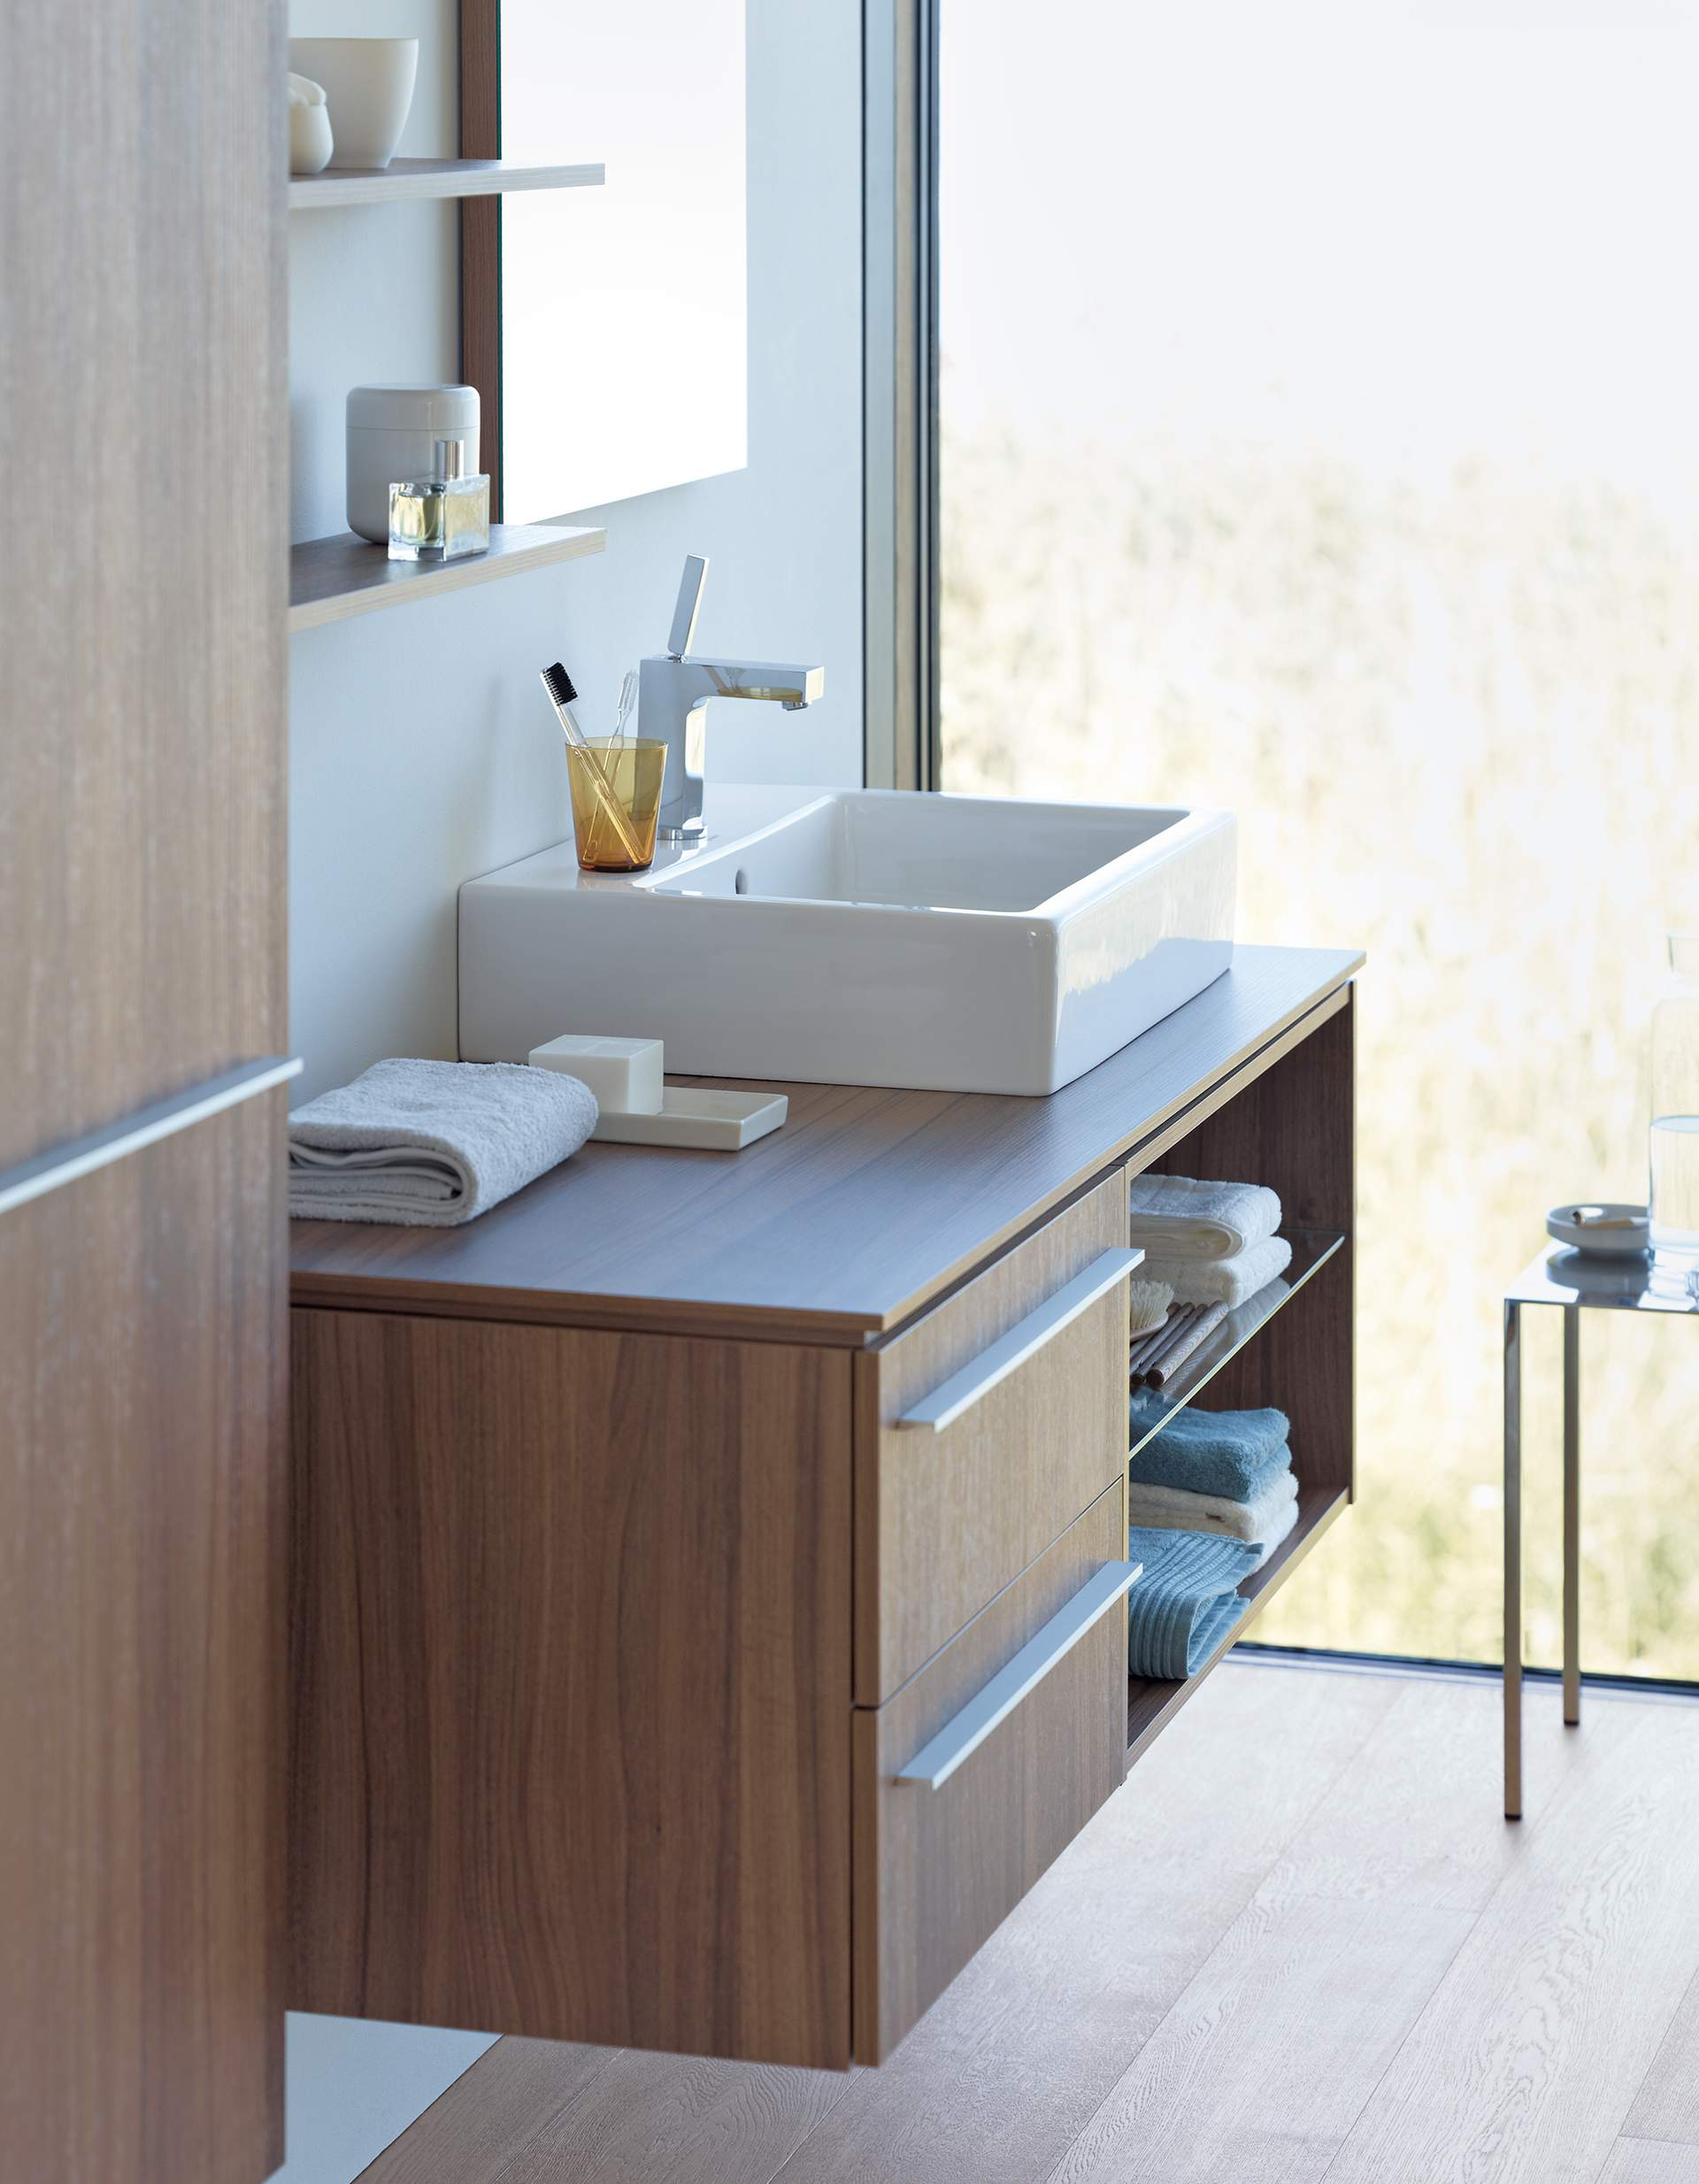 Duravit Bathroom Furniture